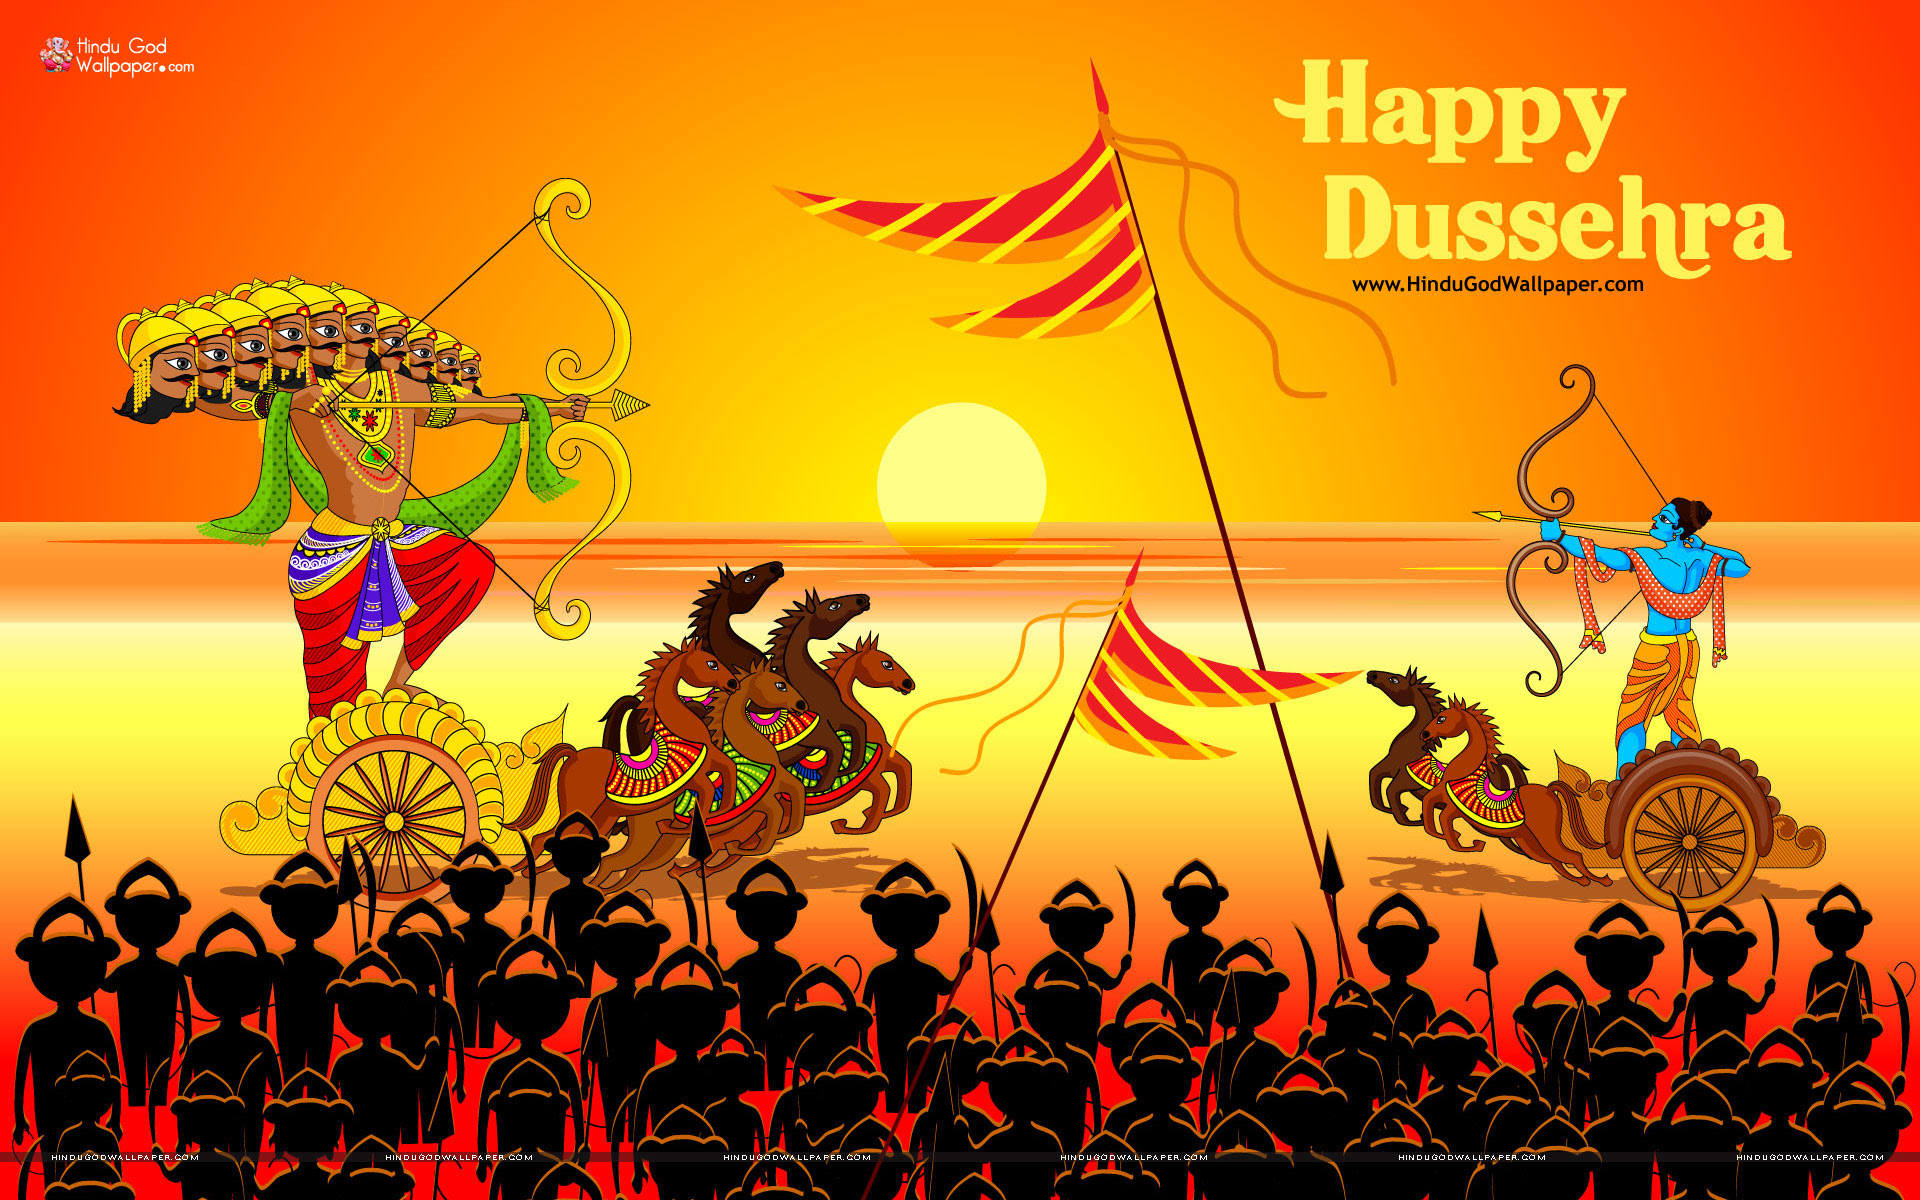 Happy Dussehra HD Wallpapers, Photos \u0026 Images Free Download